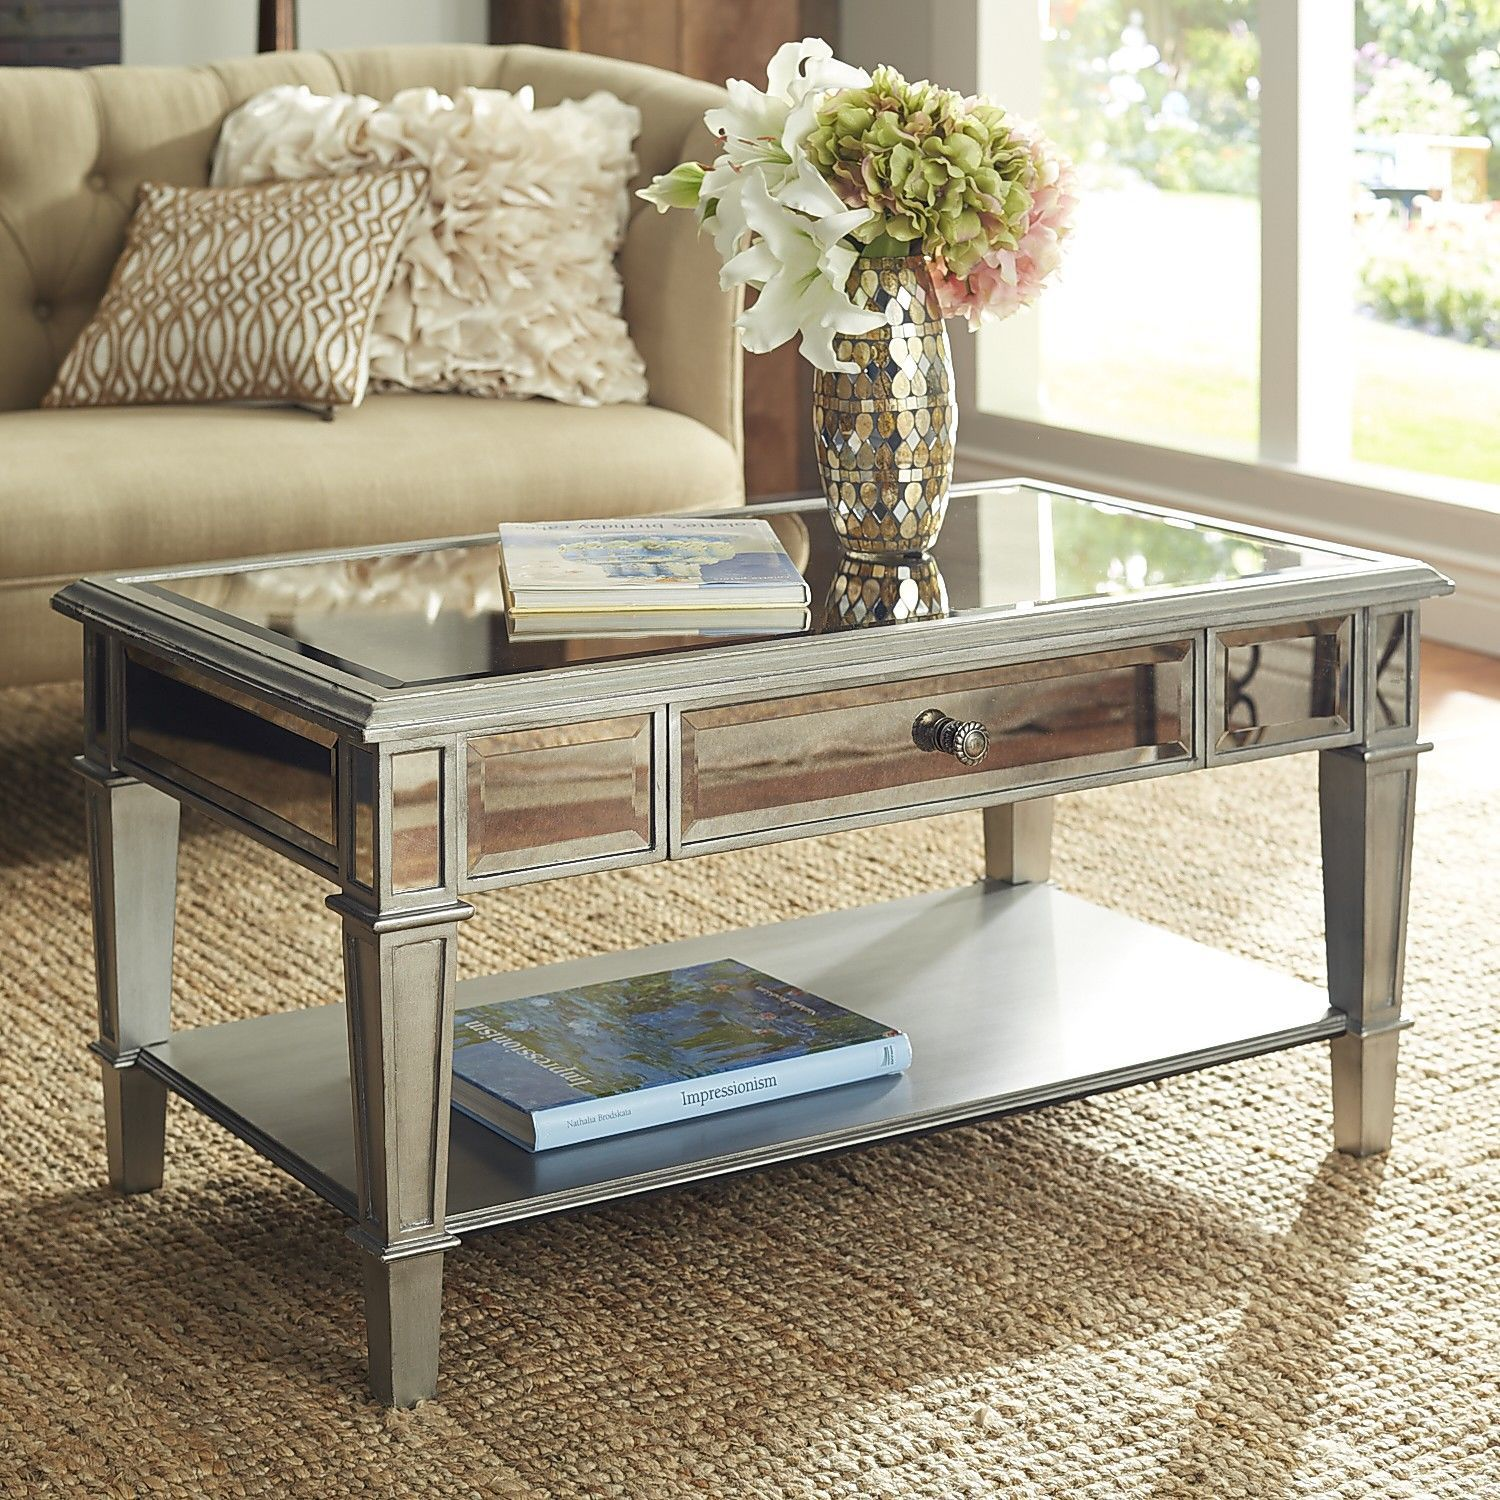 Hayworth Coffee Table Silver Pier 1 Imports Coffee Table Mirrored Coffee Tables Silver Coffee Table